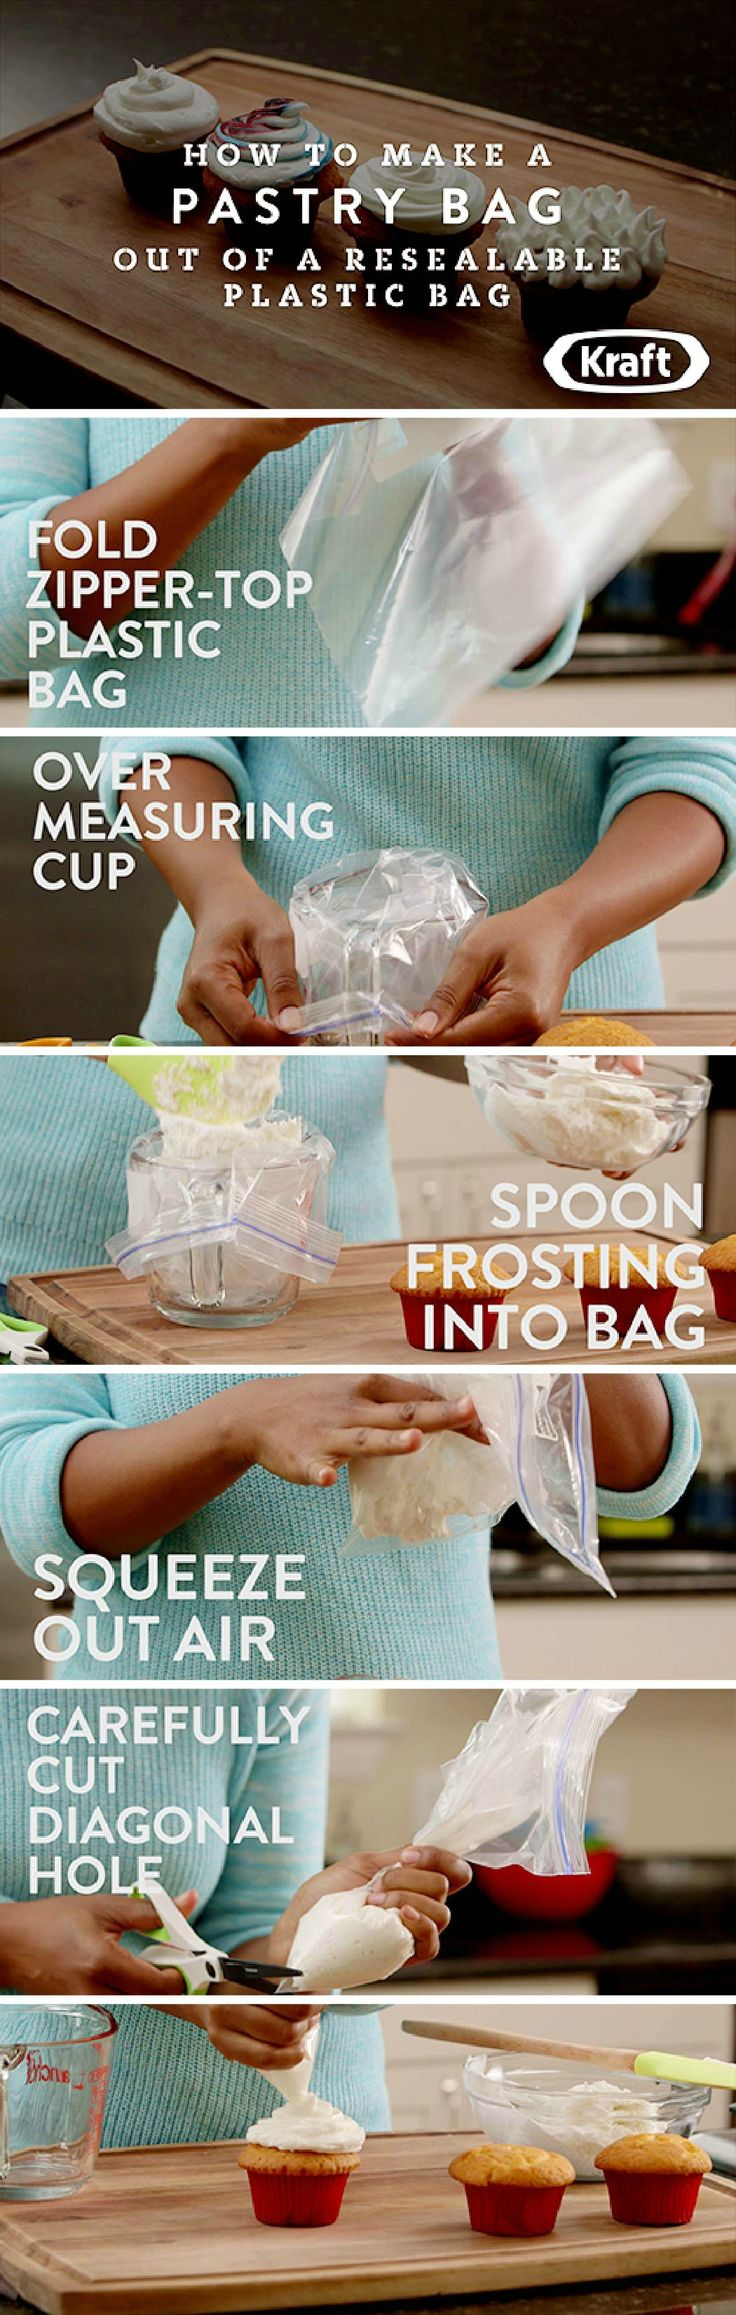 How To Make A Pastry Bag Out Of A Resealable Plastic Bag – Have you been wanting to create fun frosting designs, but don't have the fancy tools? Don't worry this tutorial for How To Make A Pastry Bag Out Of A Resealable Plastic Bag can help fix your problem!